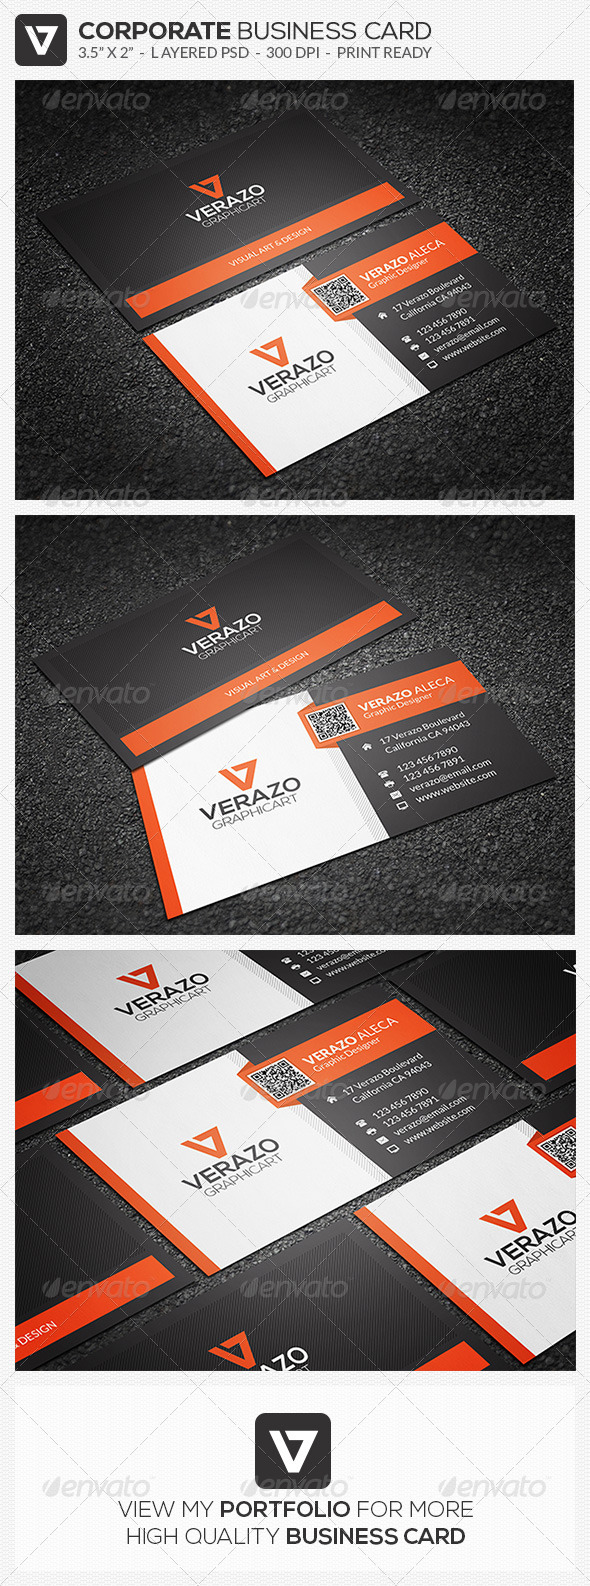 GraphicRiver Modern Corporate Business Card 44 8123424